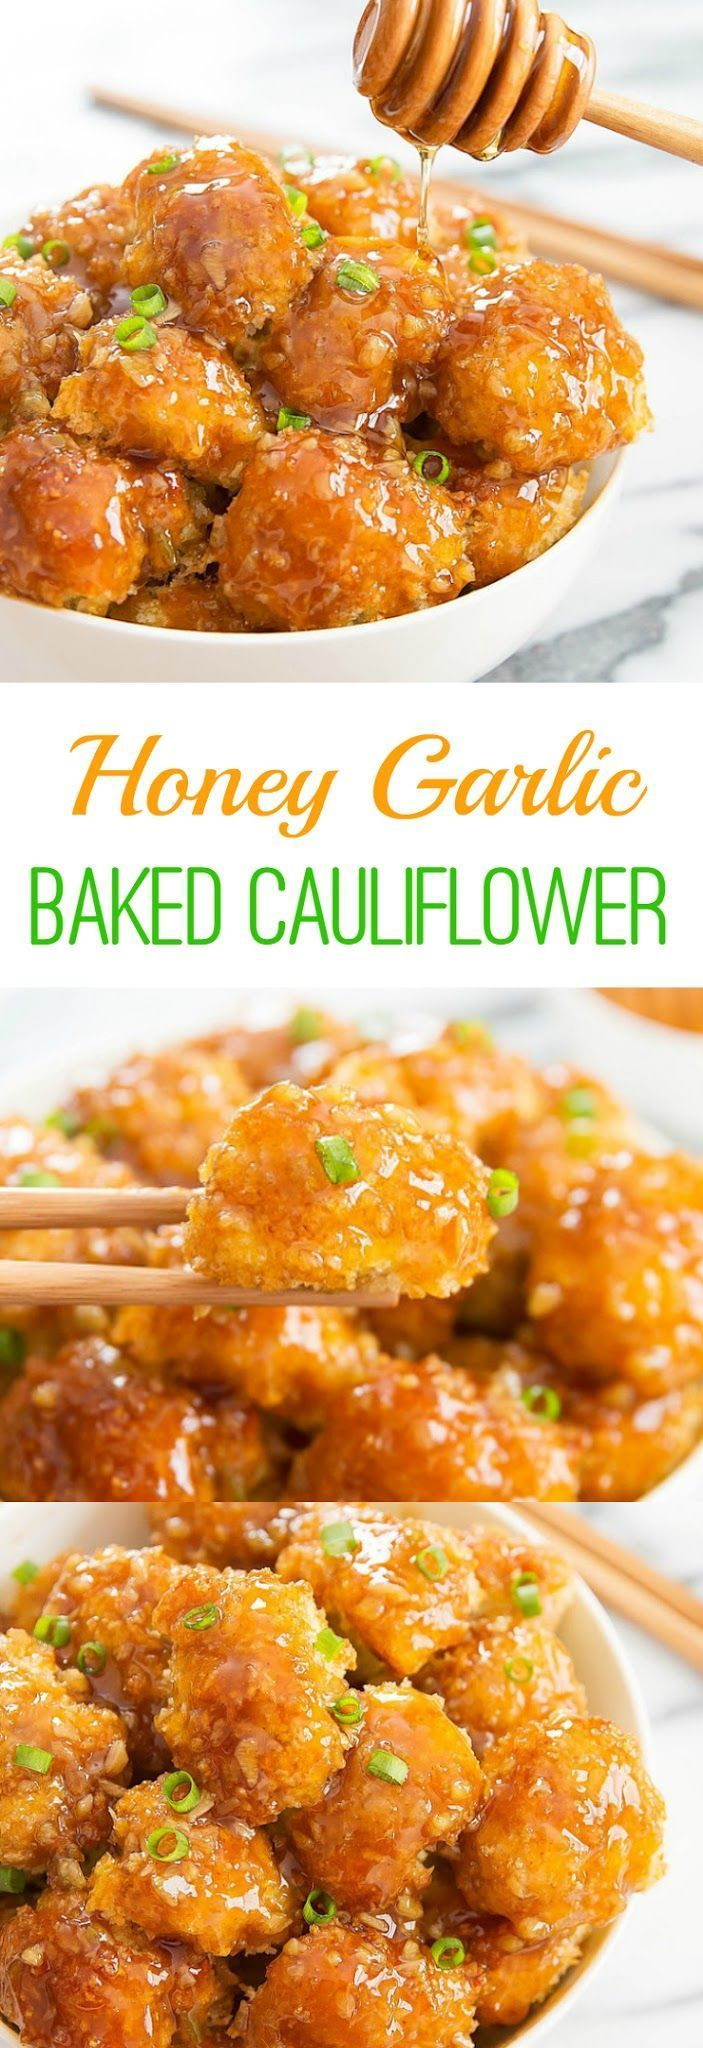 Honey Garlic Baked Cauliflower. An easy and delicious weeknight meal! – I can't